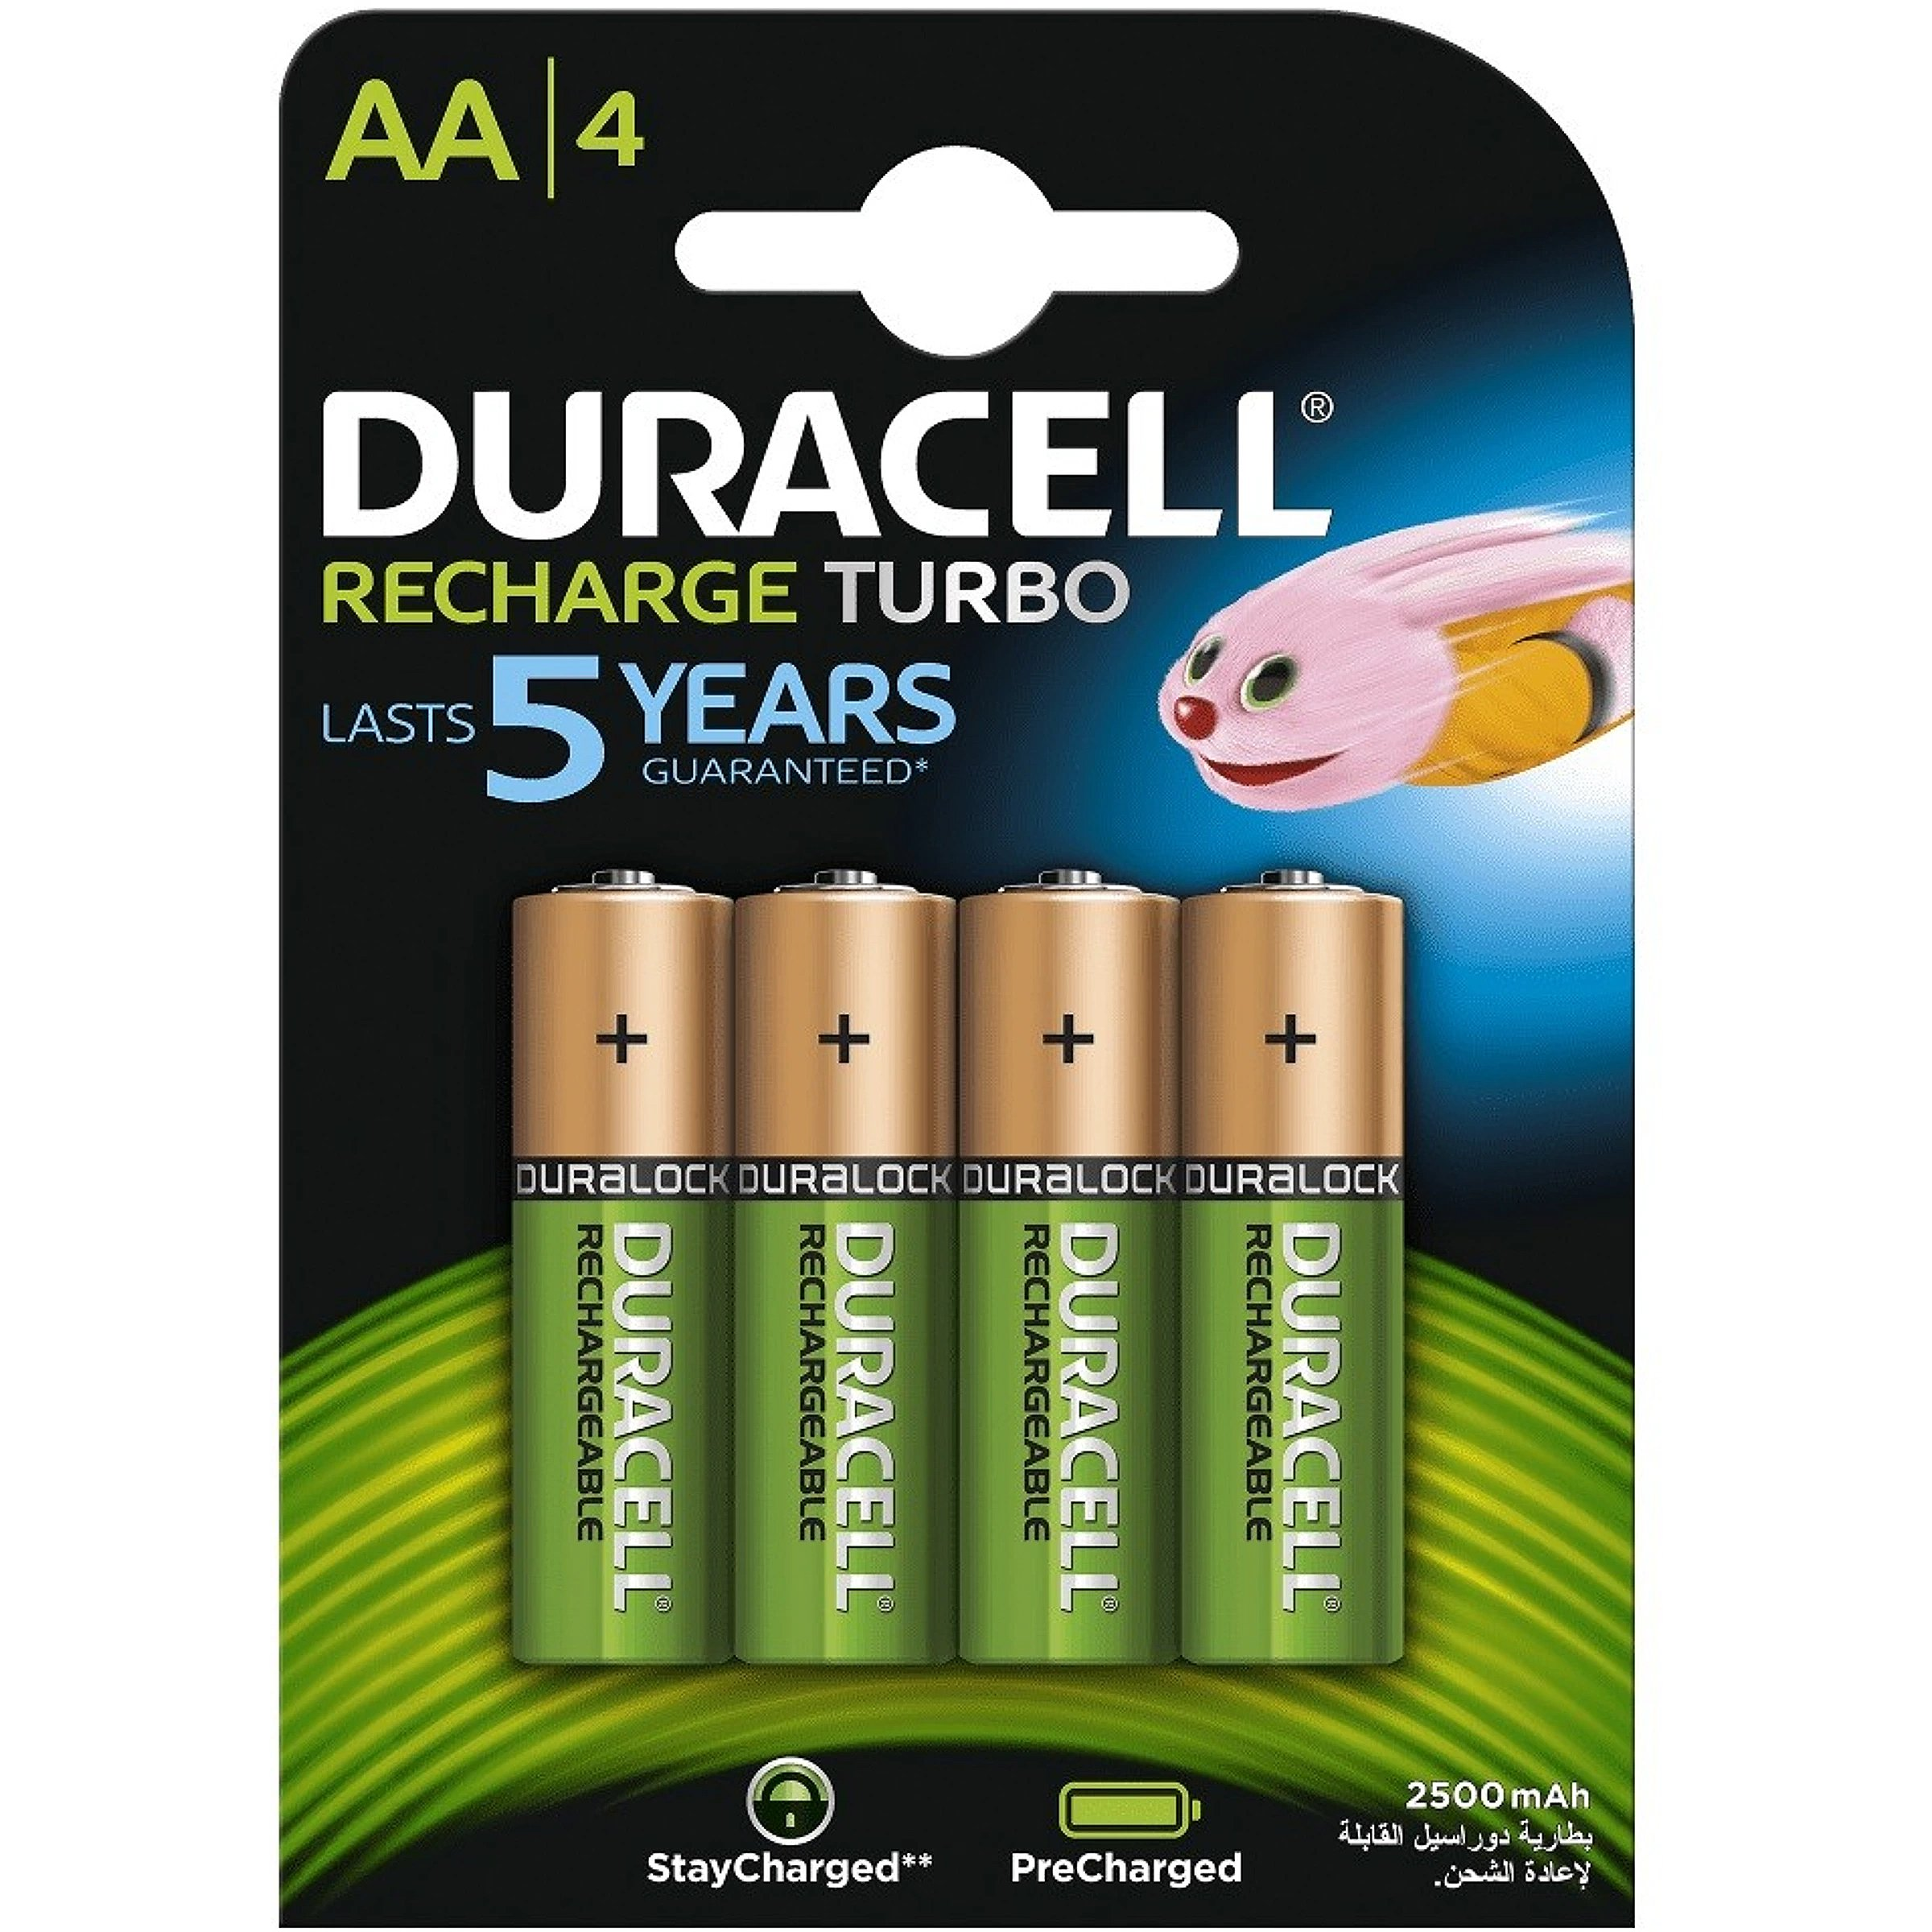 rechargeable batteries NiMH 2650mAh 1.2V rechargeable battery Nickel-Metal Hydride , 2650 mAh, 1.2 V, AA, 119 x 84 x 15 mm NiMH Duracell HR6 AA 4-pack Nickel-Metal Hydride